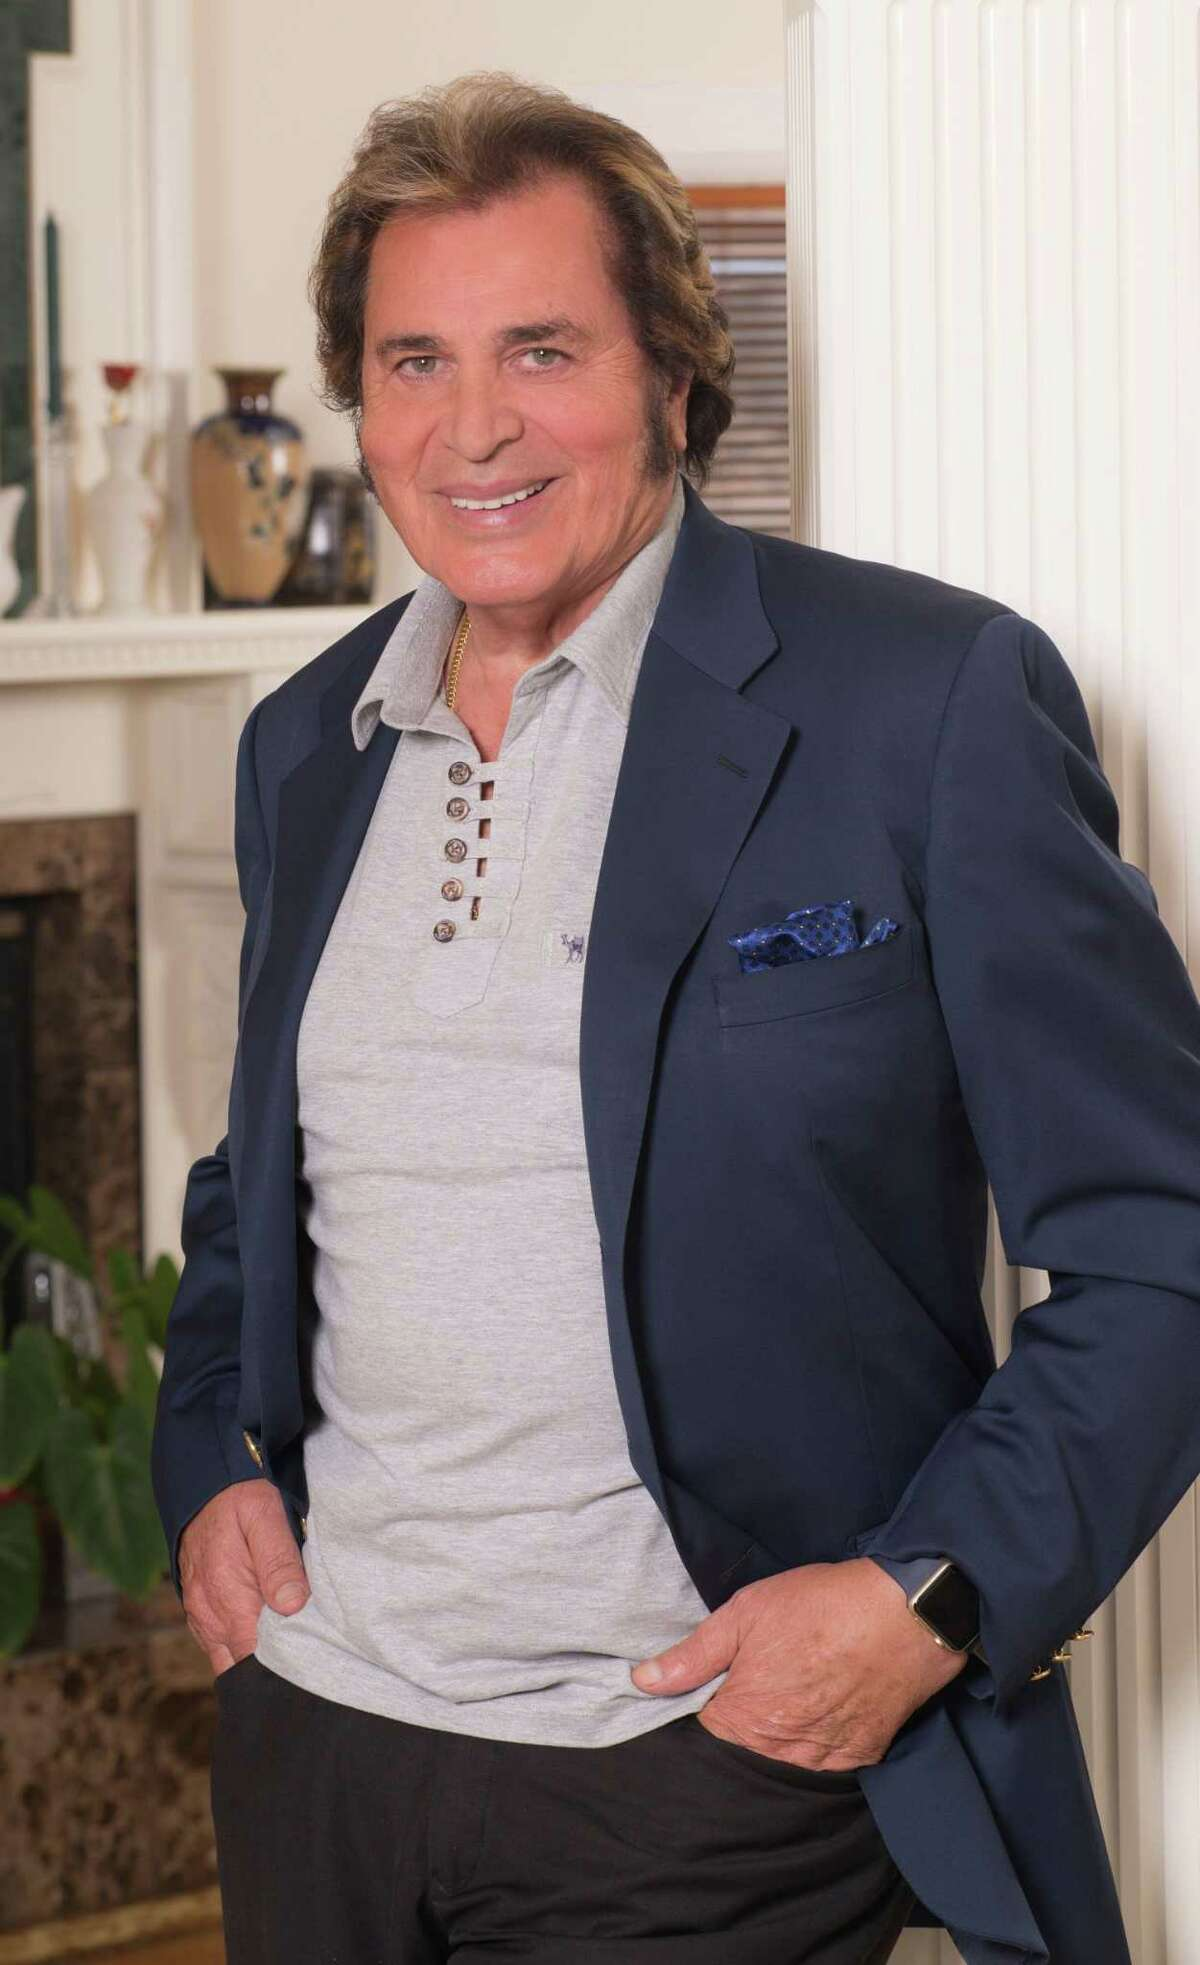 Engelbert Humperdinck will perform at the Fox Theater at Foxwoods Resort Casino on May 11.